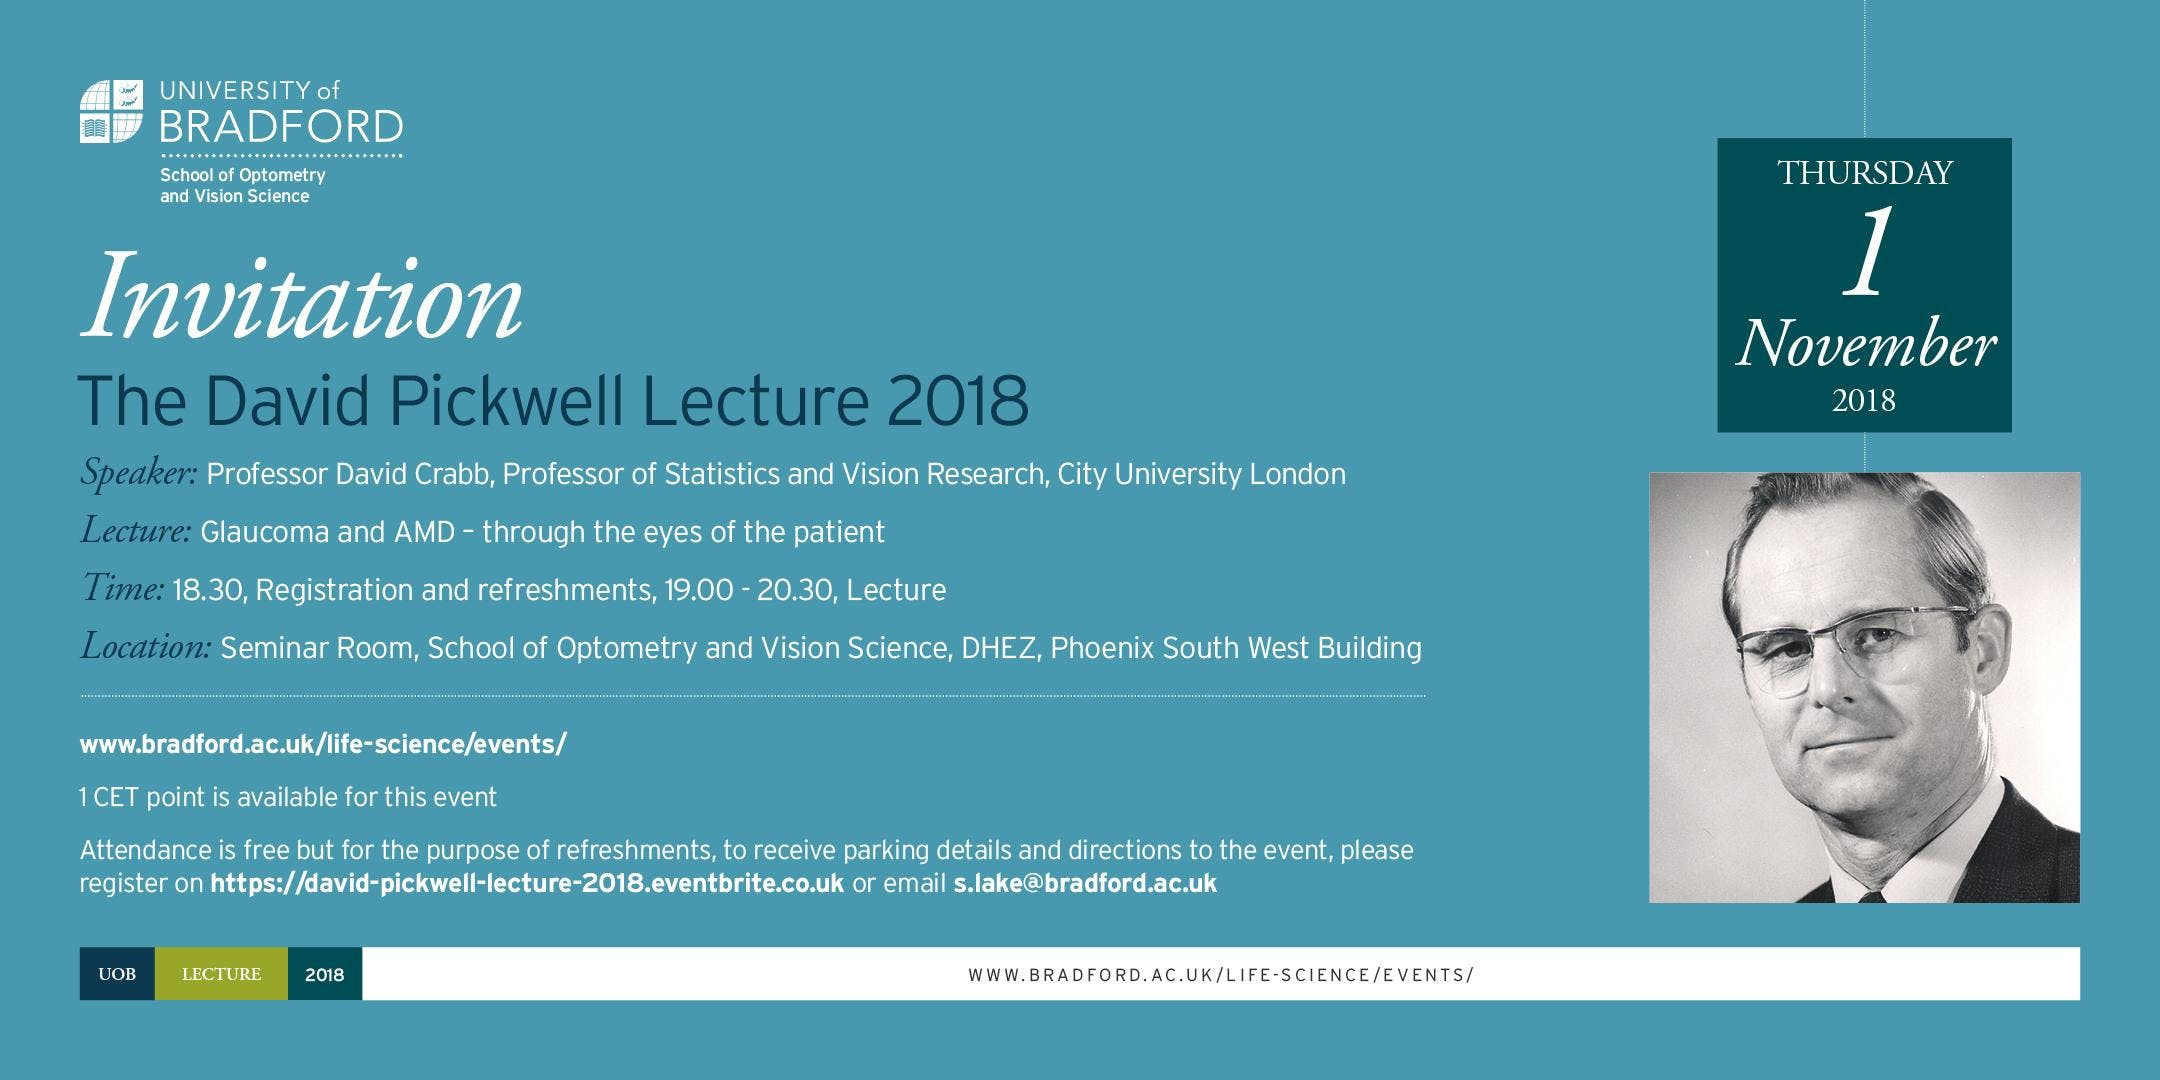 David Pickwell Lecture 2018